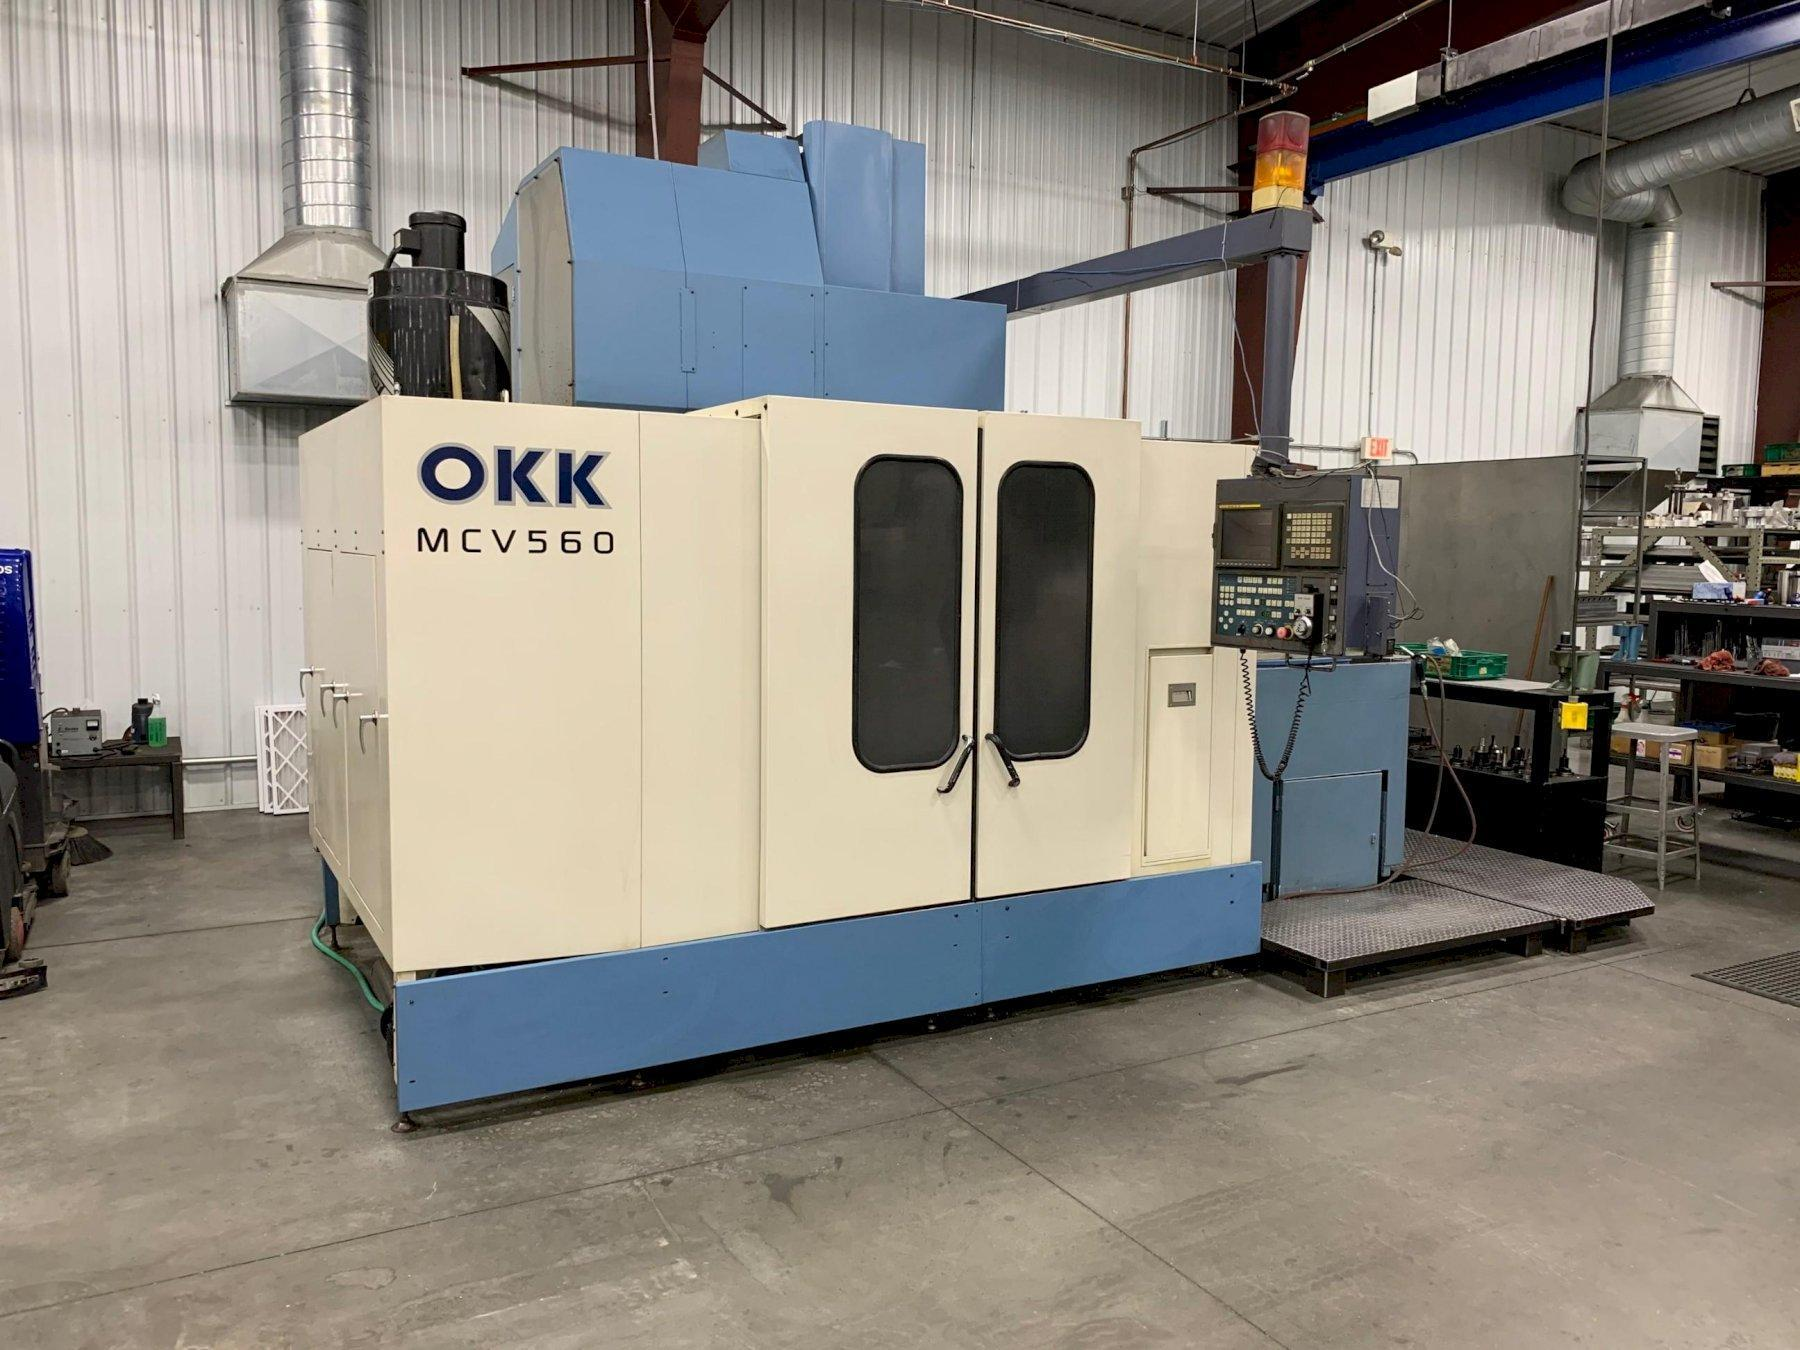 OKK MCV 560 VERTICAL MACHINING CENTER